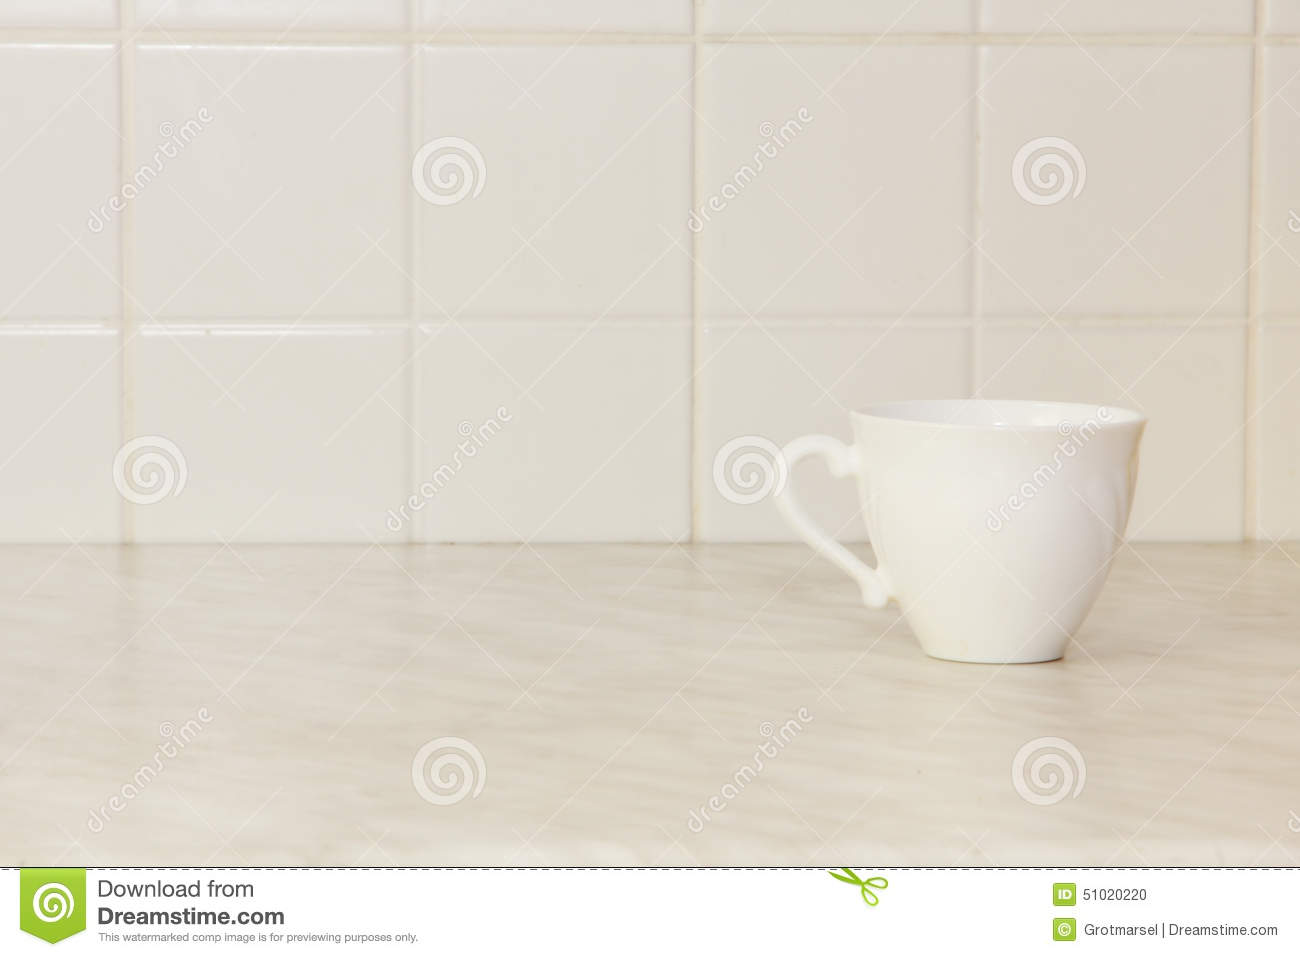 White Tile Kitchen Table Ceramic Tea Cup On White Kitchen Table Stock Photo